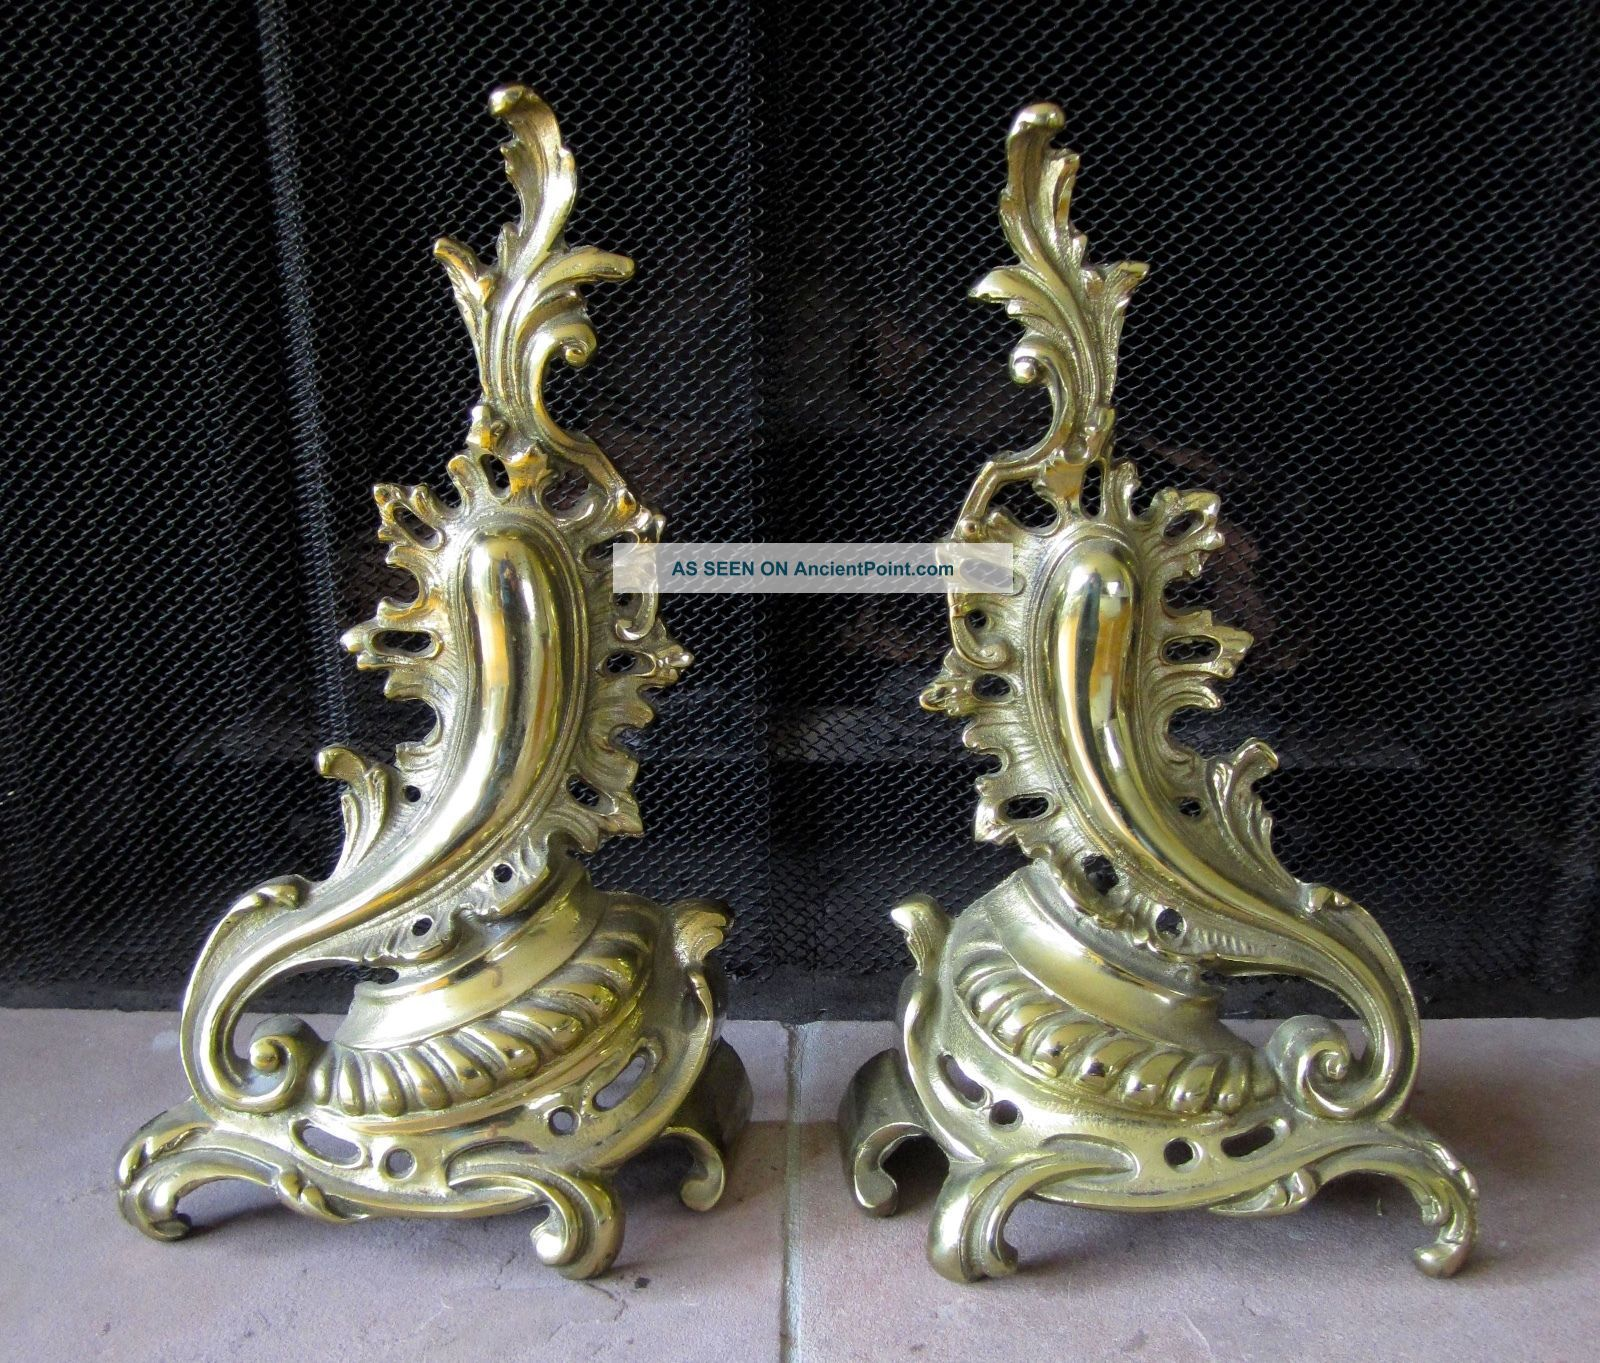 Vintage Brass Rococo Fleur De Lis Andirons Chants Fireplace Firedogs French Hearth Ware photo